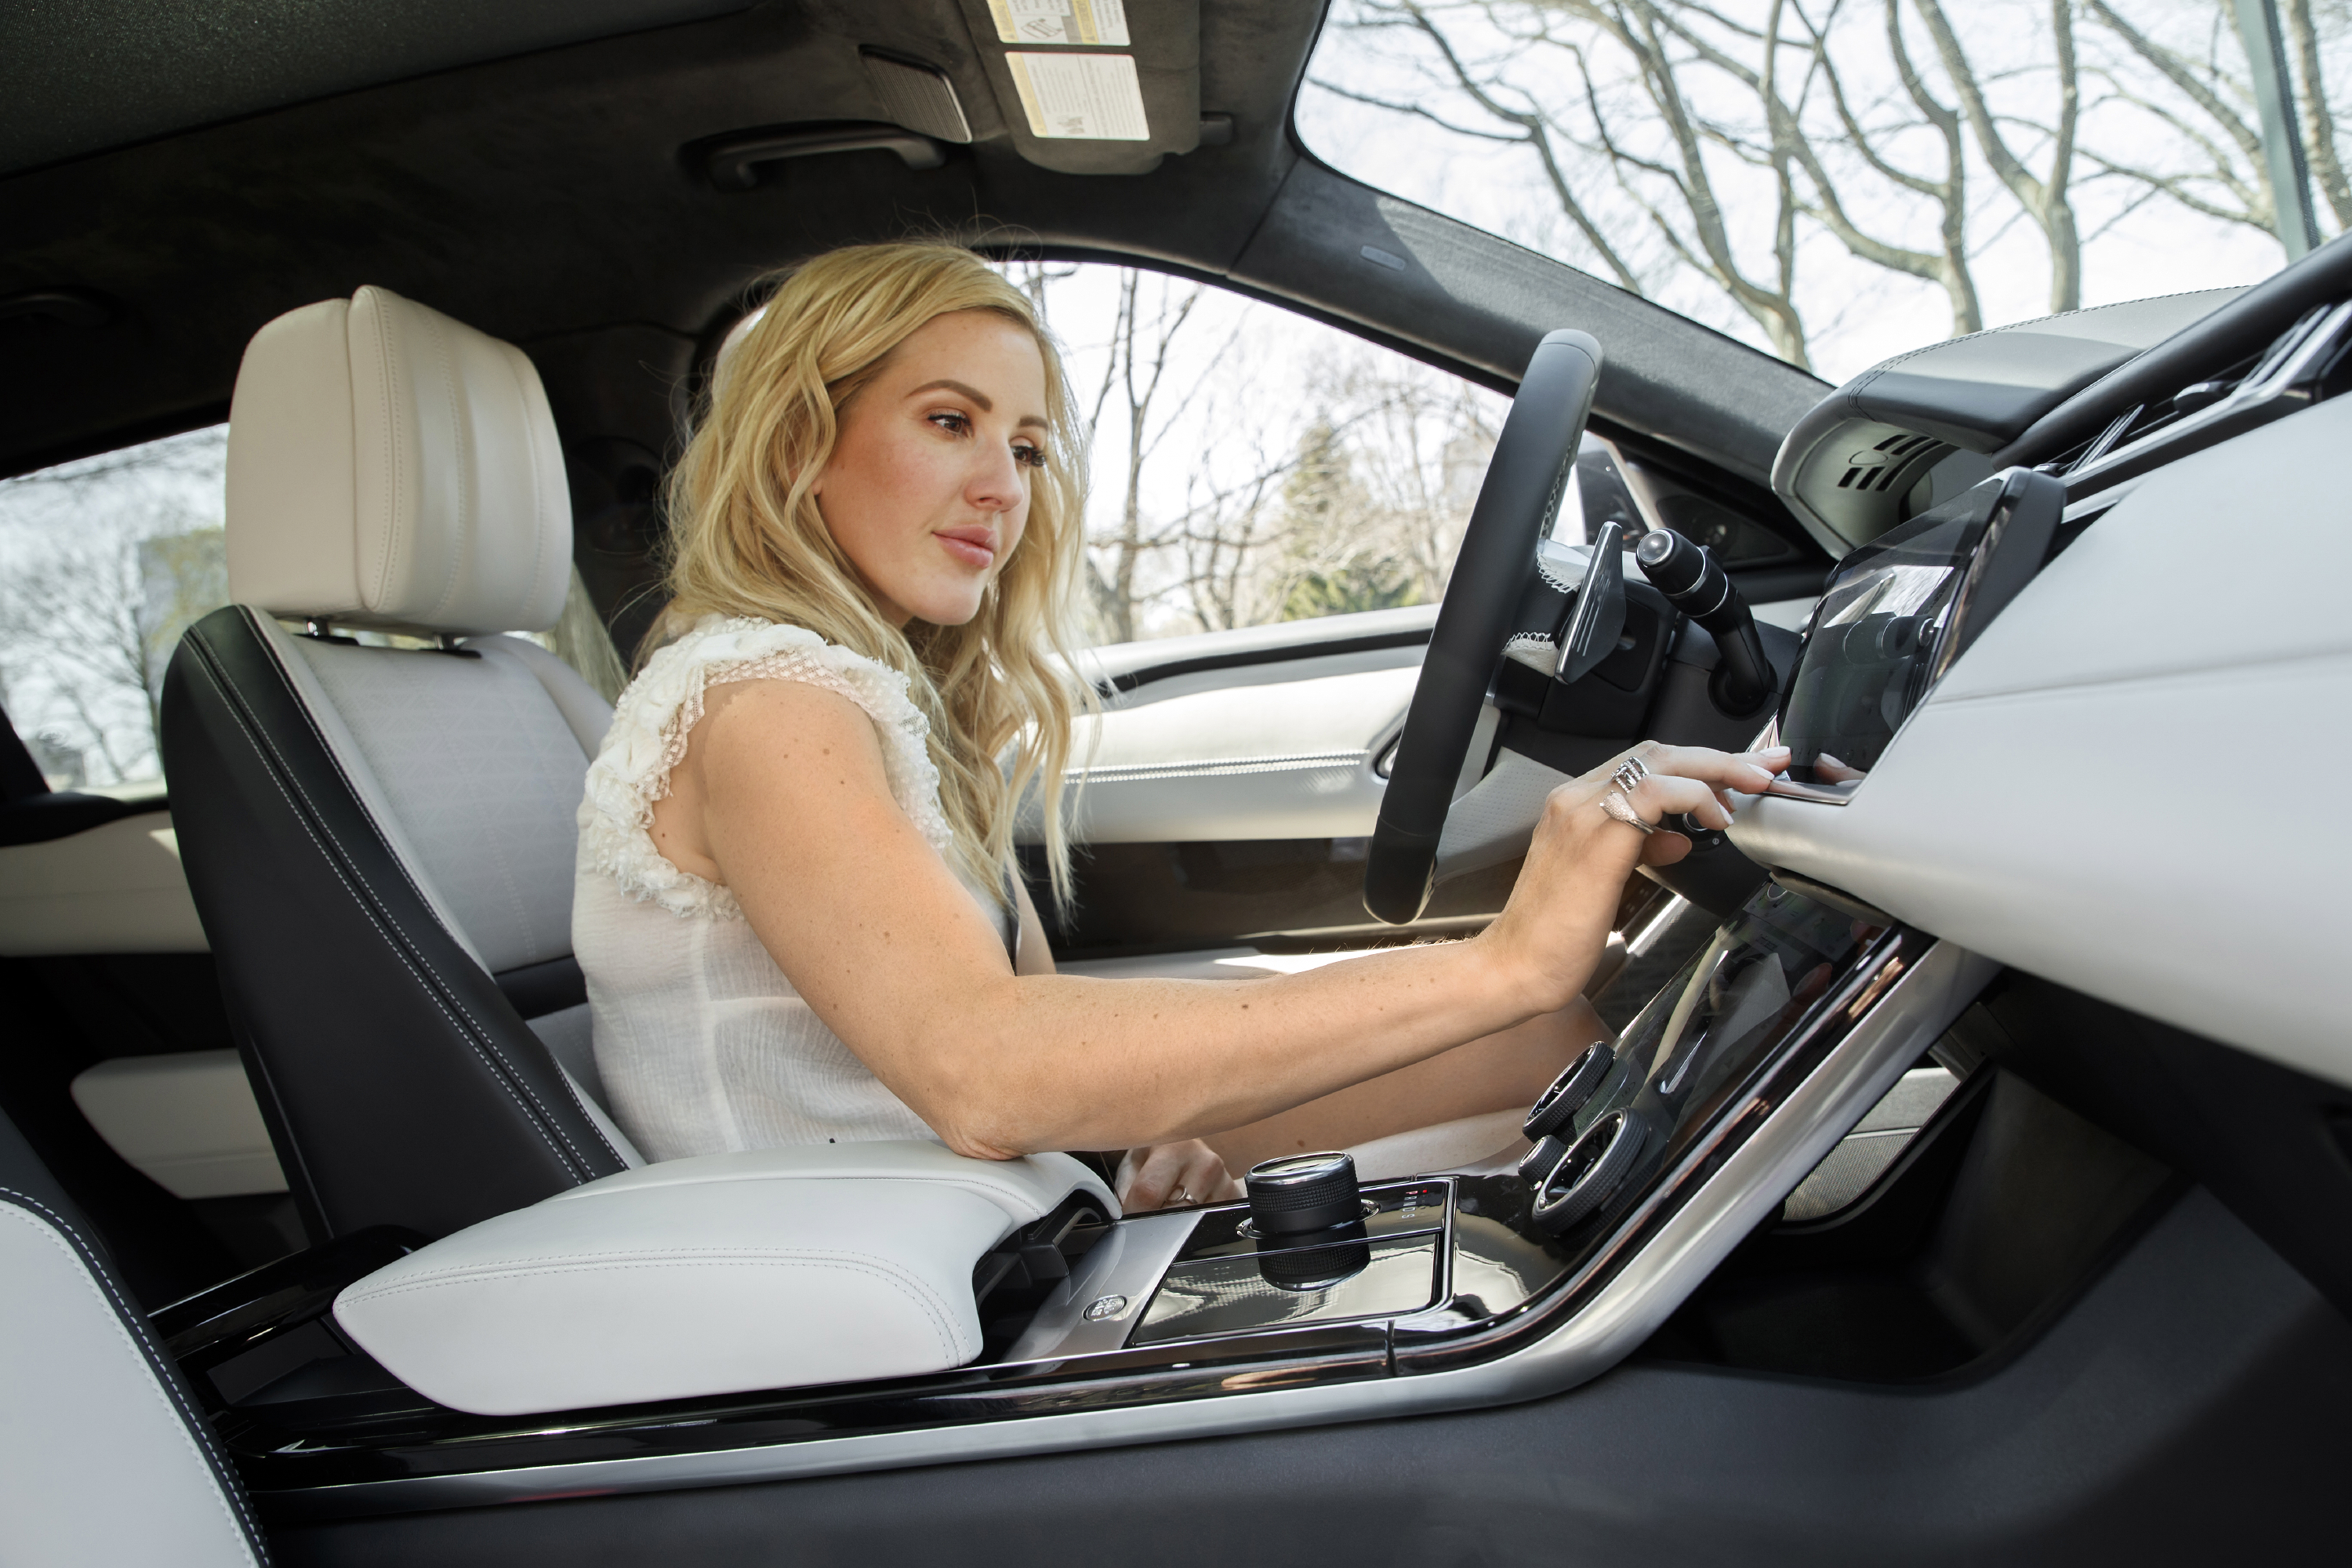 Ellie Goulding takes the new Velar out for a springtime drive